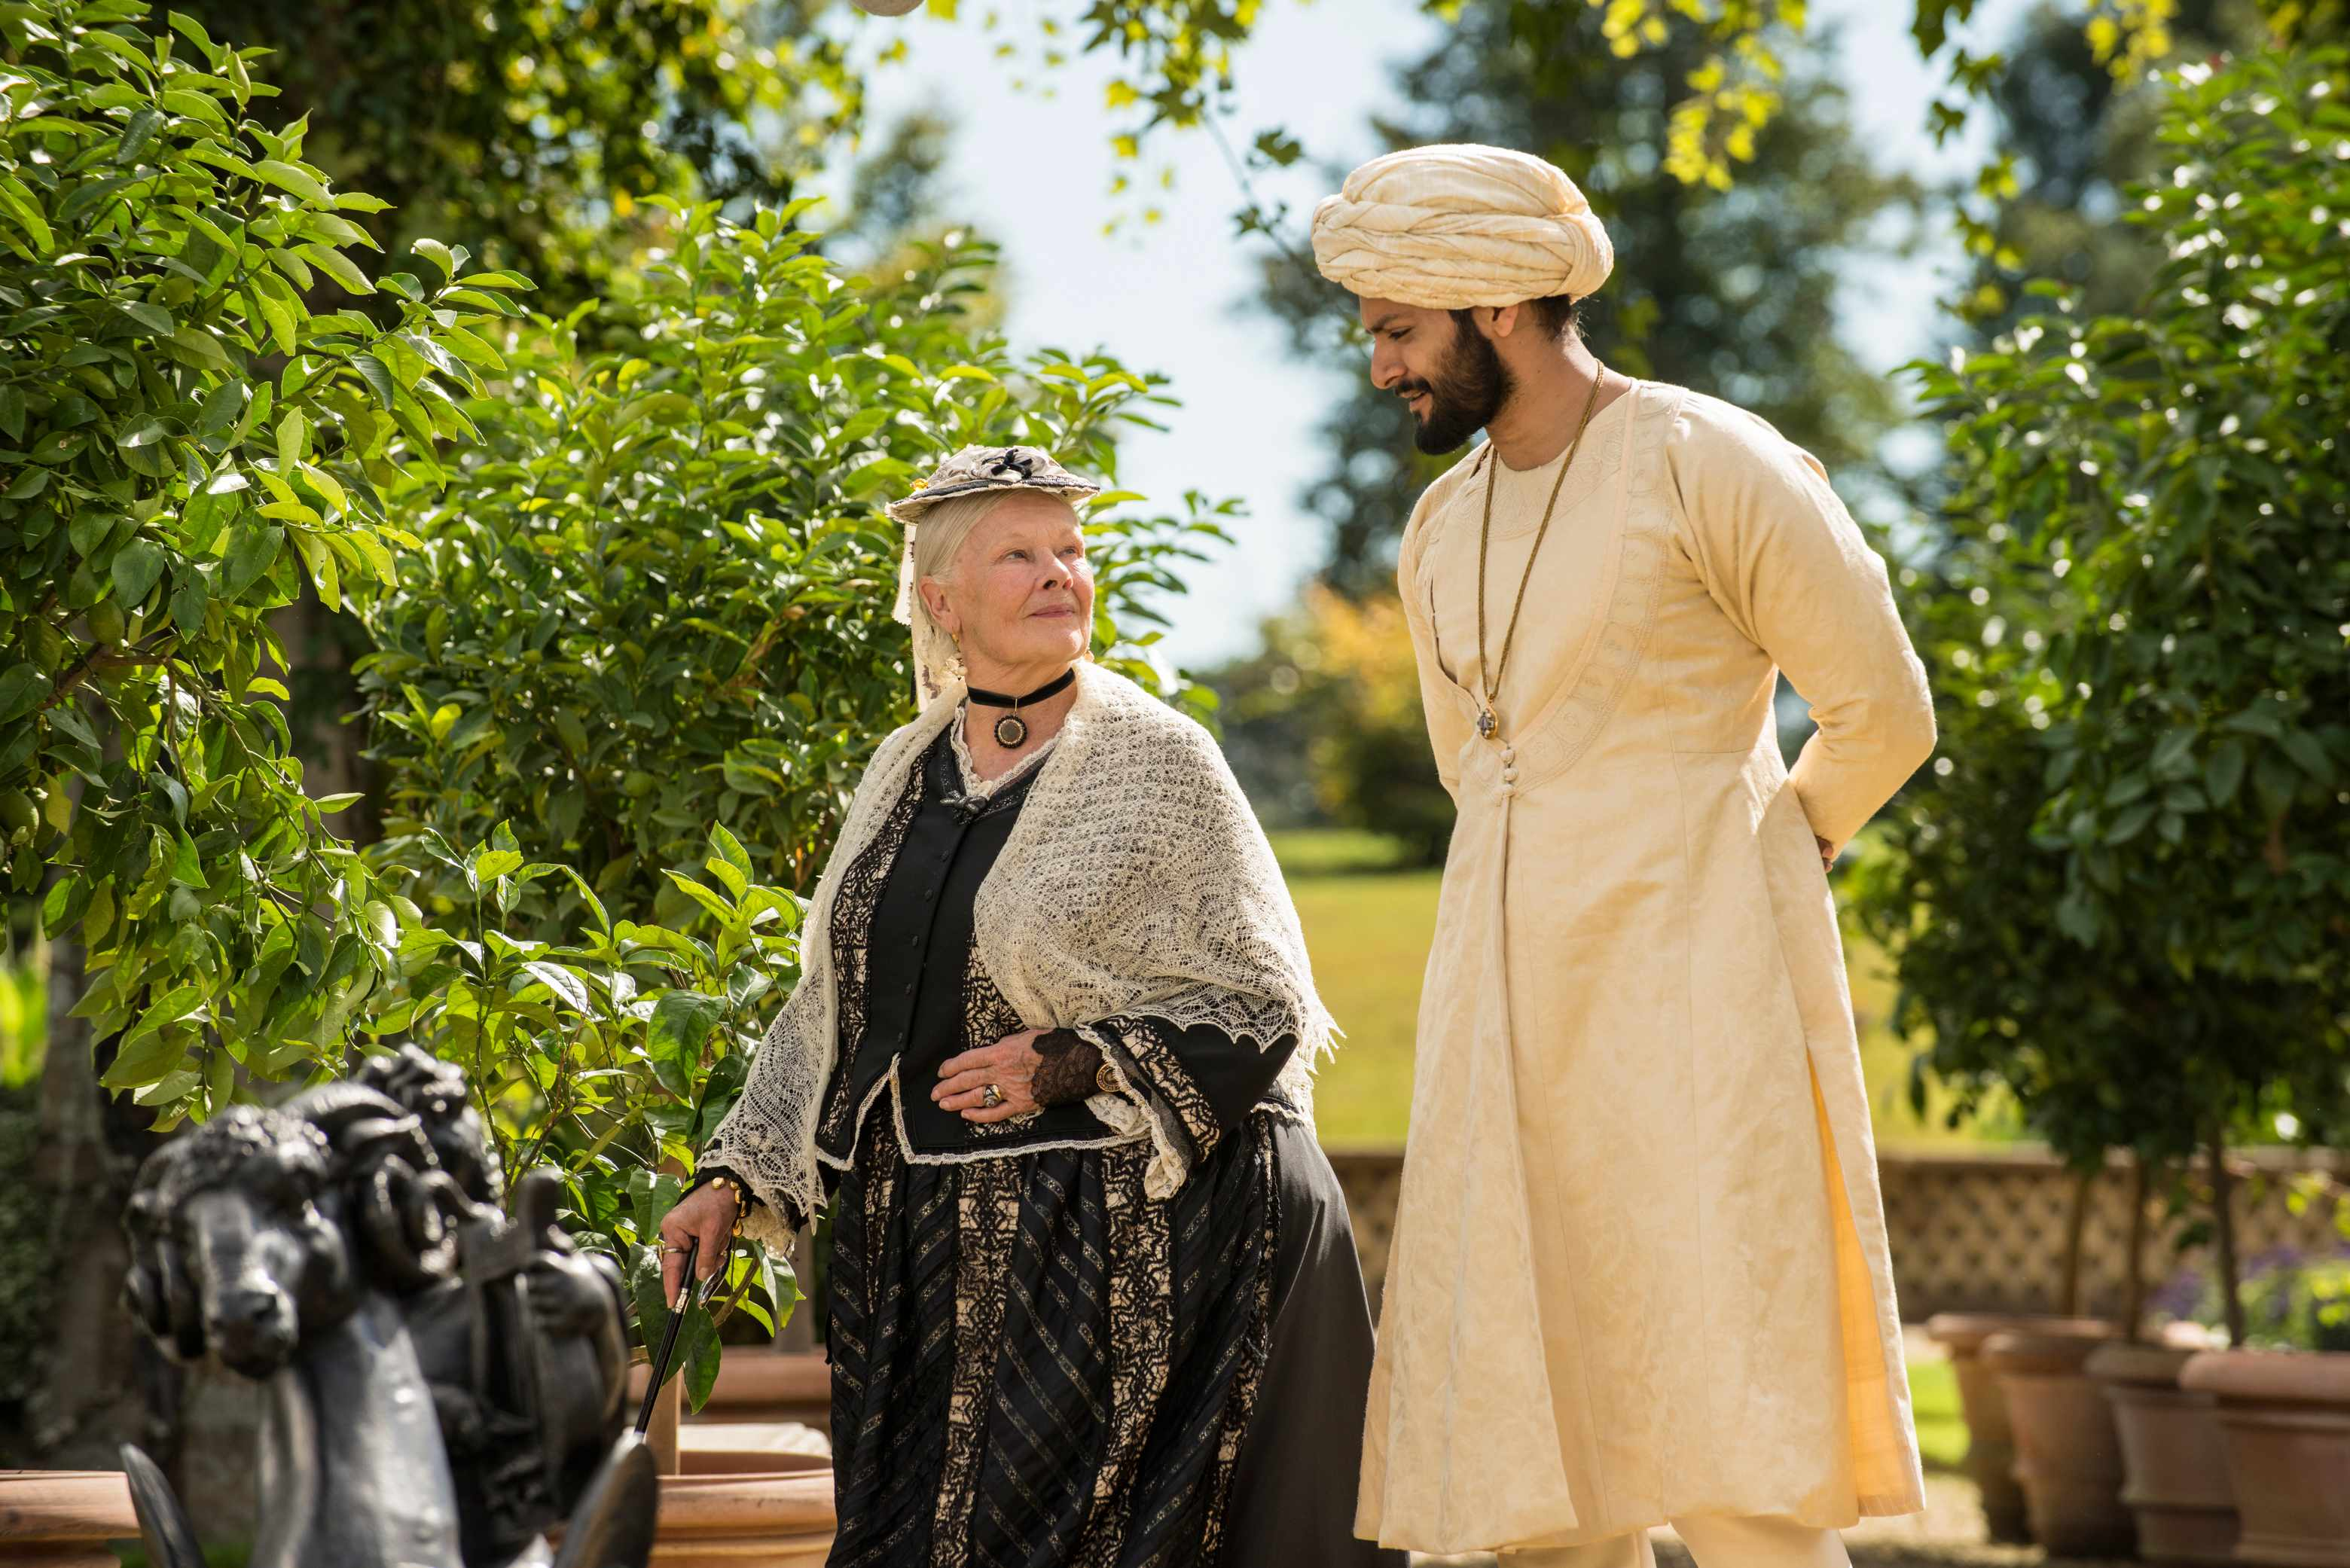 Judi Dench as Queen Victoria and Ali Fazal as Abdul Karim in Victoria & Abdul